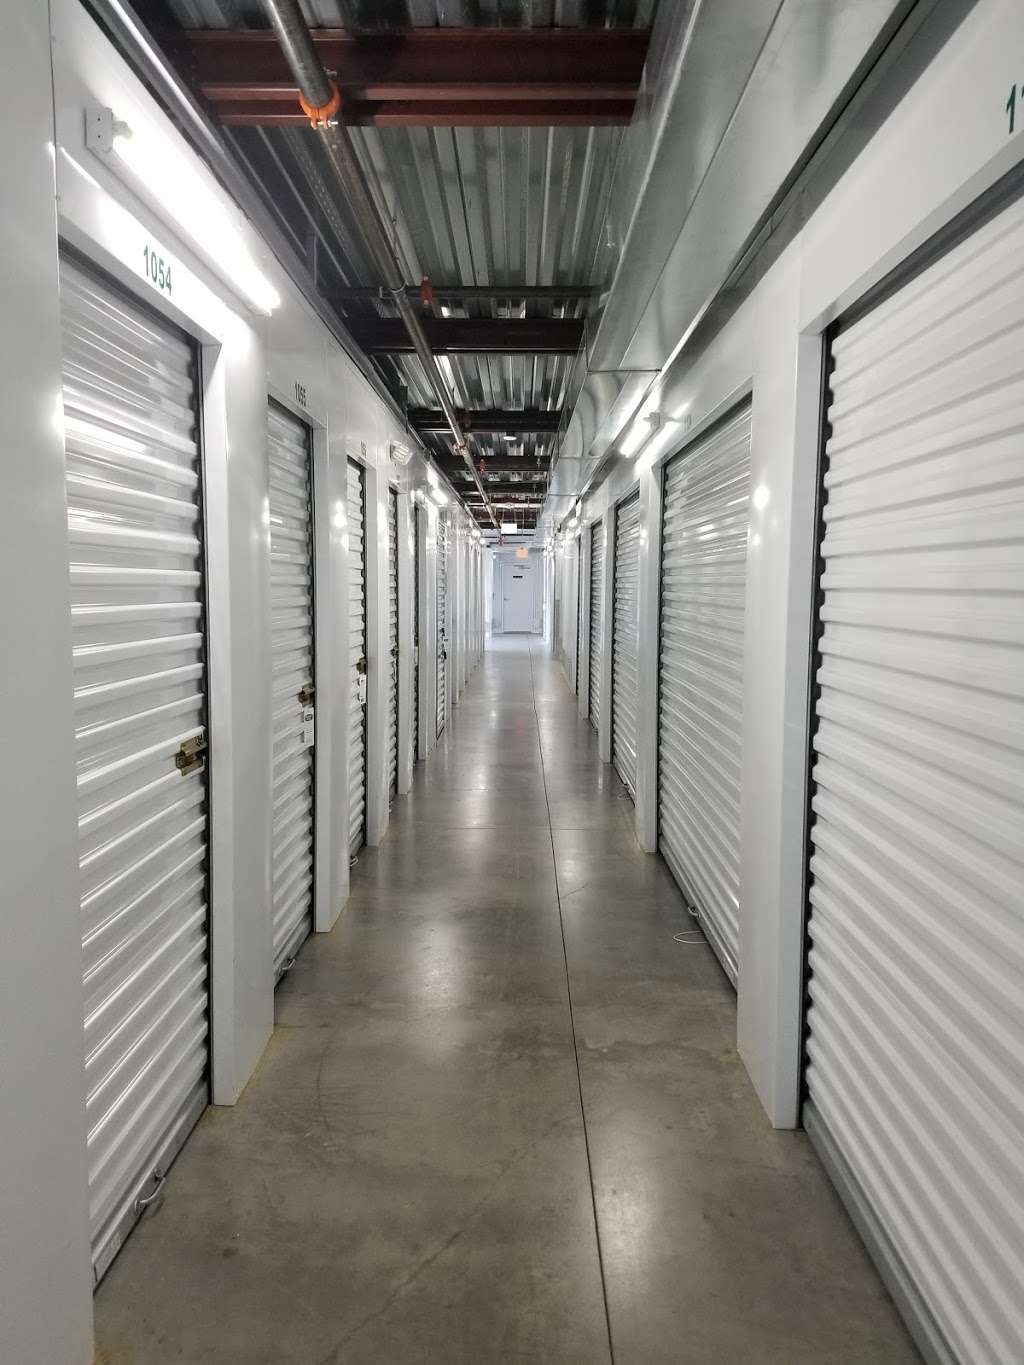 Extra Space Storage - moving company  | Photo 5 of 10 | Address: 9800 Ardrey Kell Rd, Charlotte, NC 28277, USA | Phone: (980) 498-8004